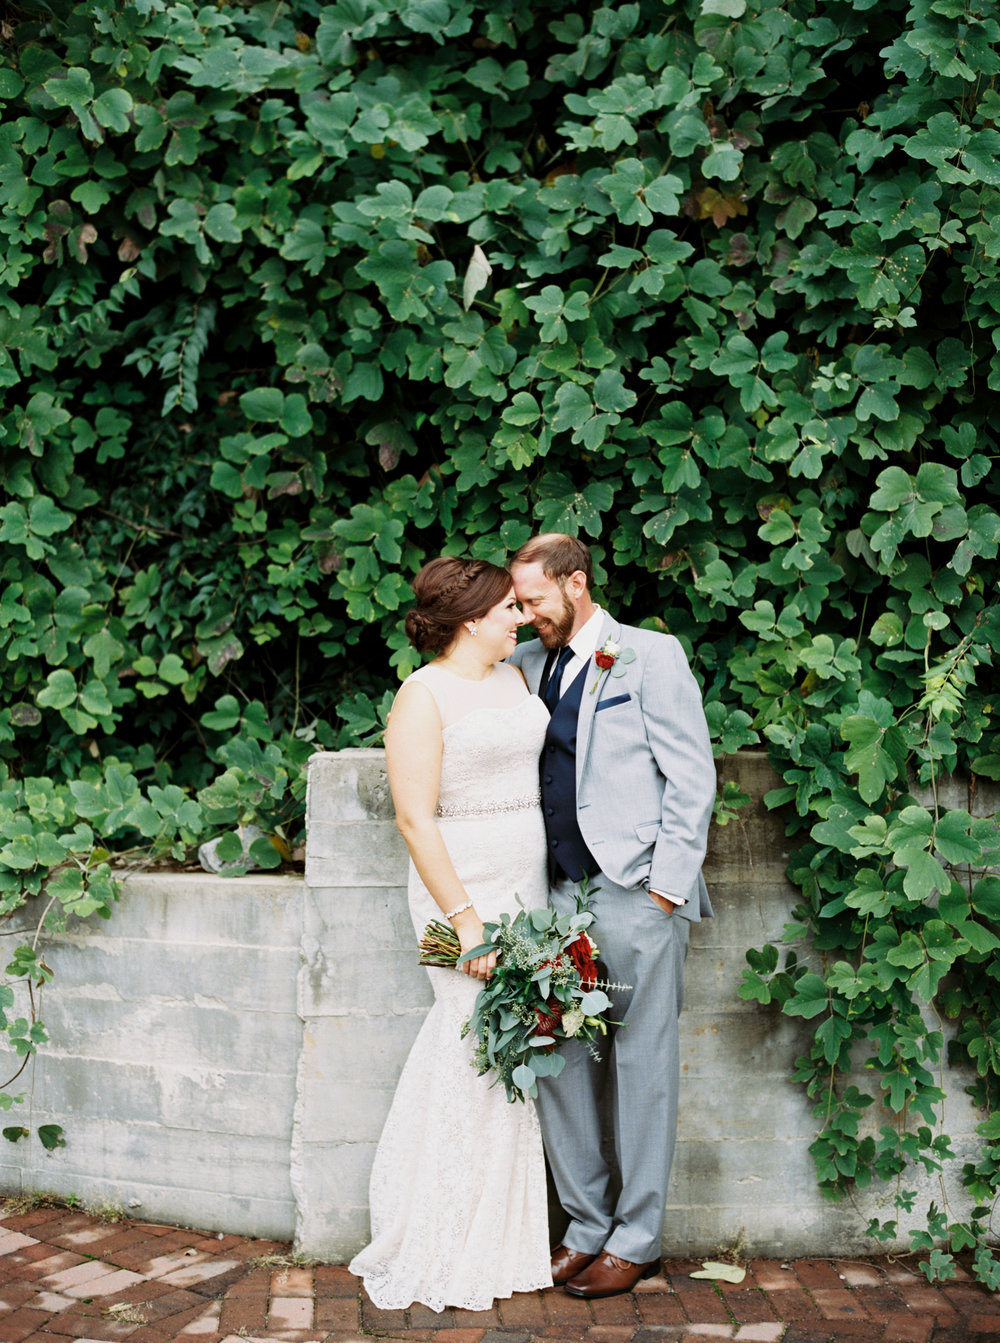 Jessica_Bryan_Wedding_Standard_Knoxville_Abigail_Malone_Photography-241.jpg